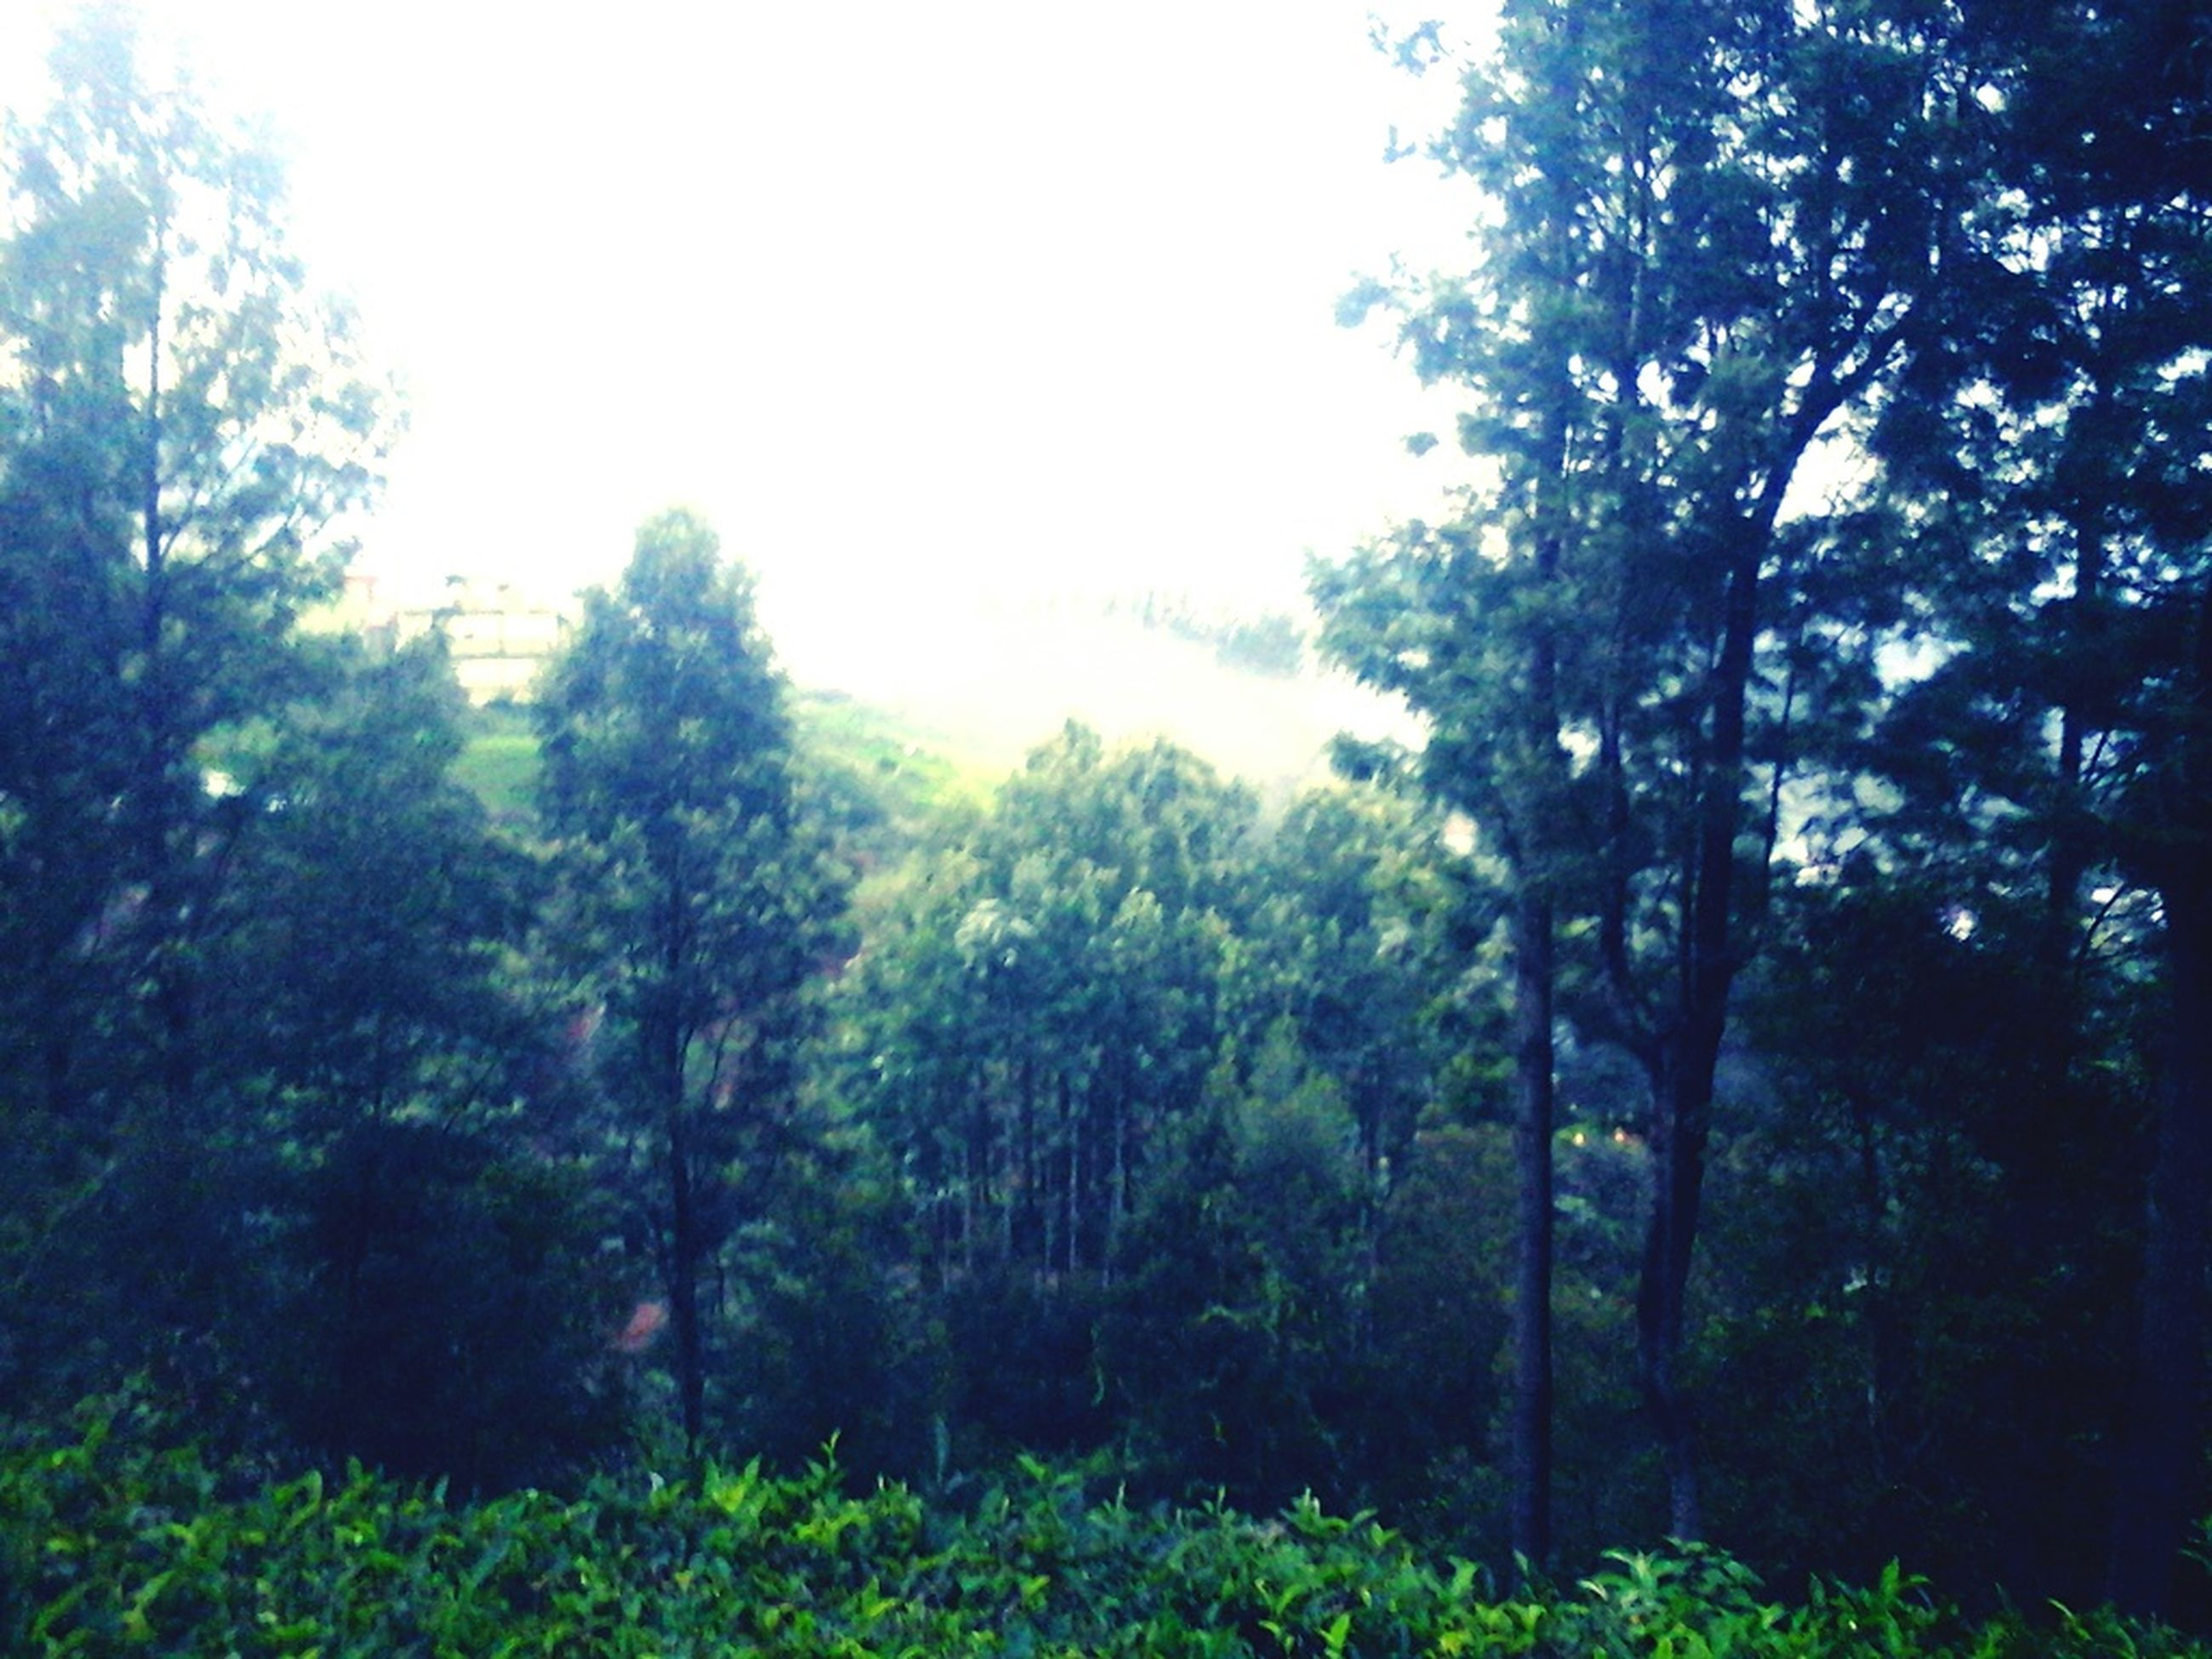 tree, growth, tranquility, tranquil scene, forest, clear sky, beauty in nature, nature, green color, branch, scenics, lush foliage, woodland, day, non-urban scene, outdoors, no people, tree trunk, sky, landscape